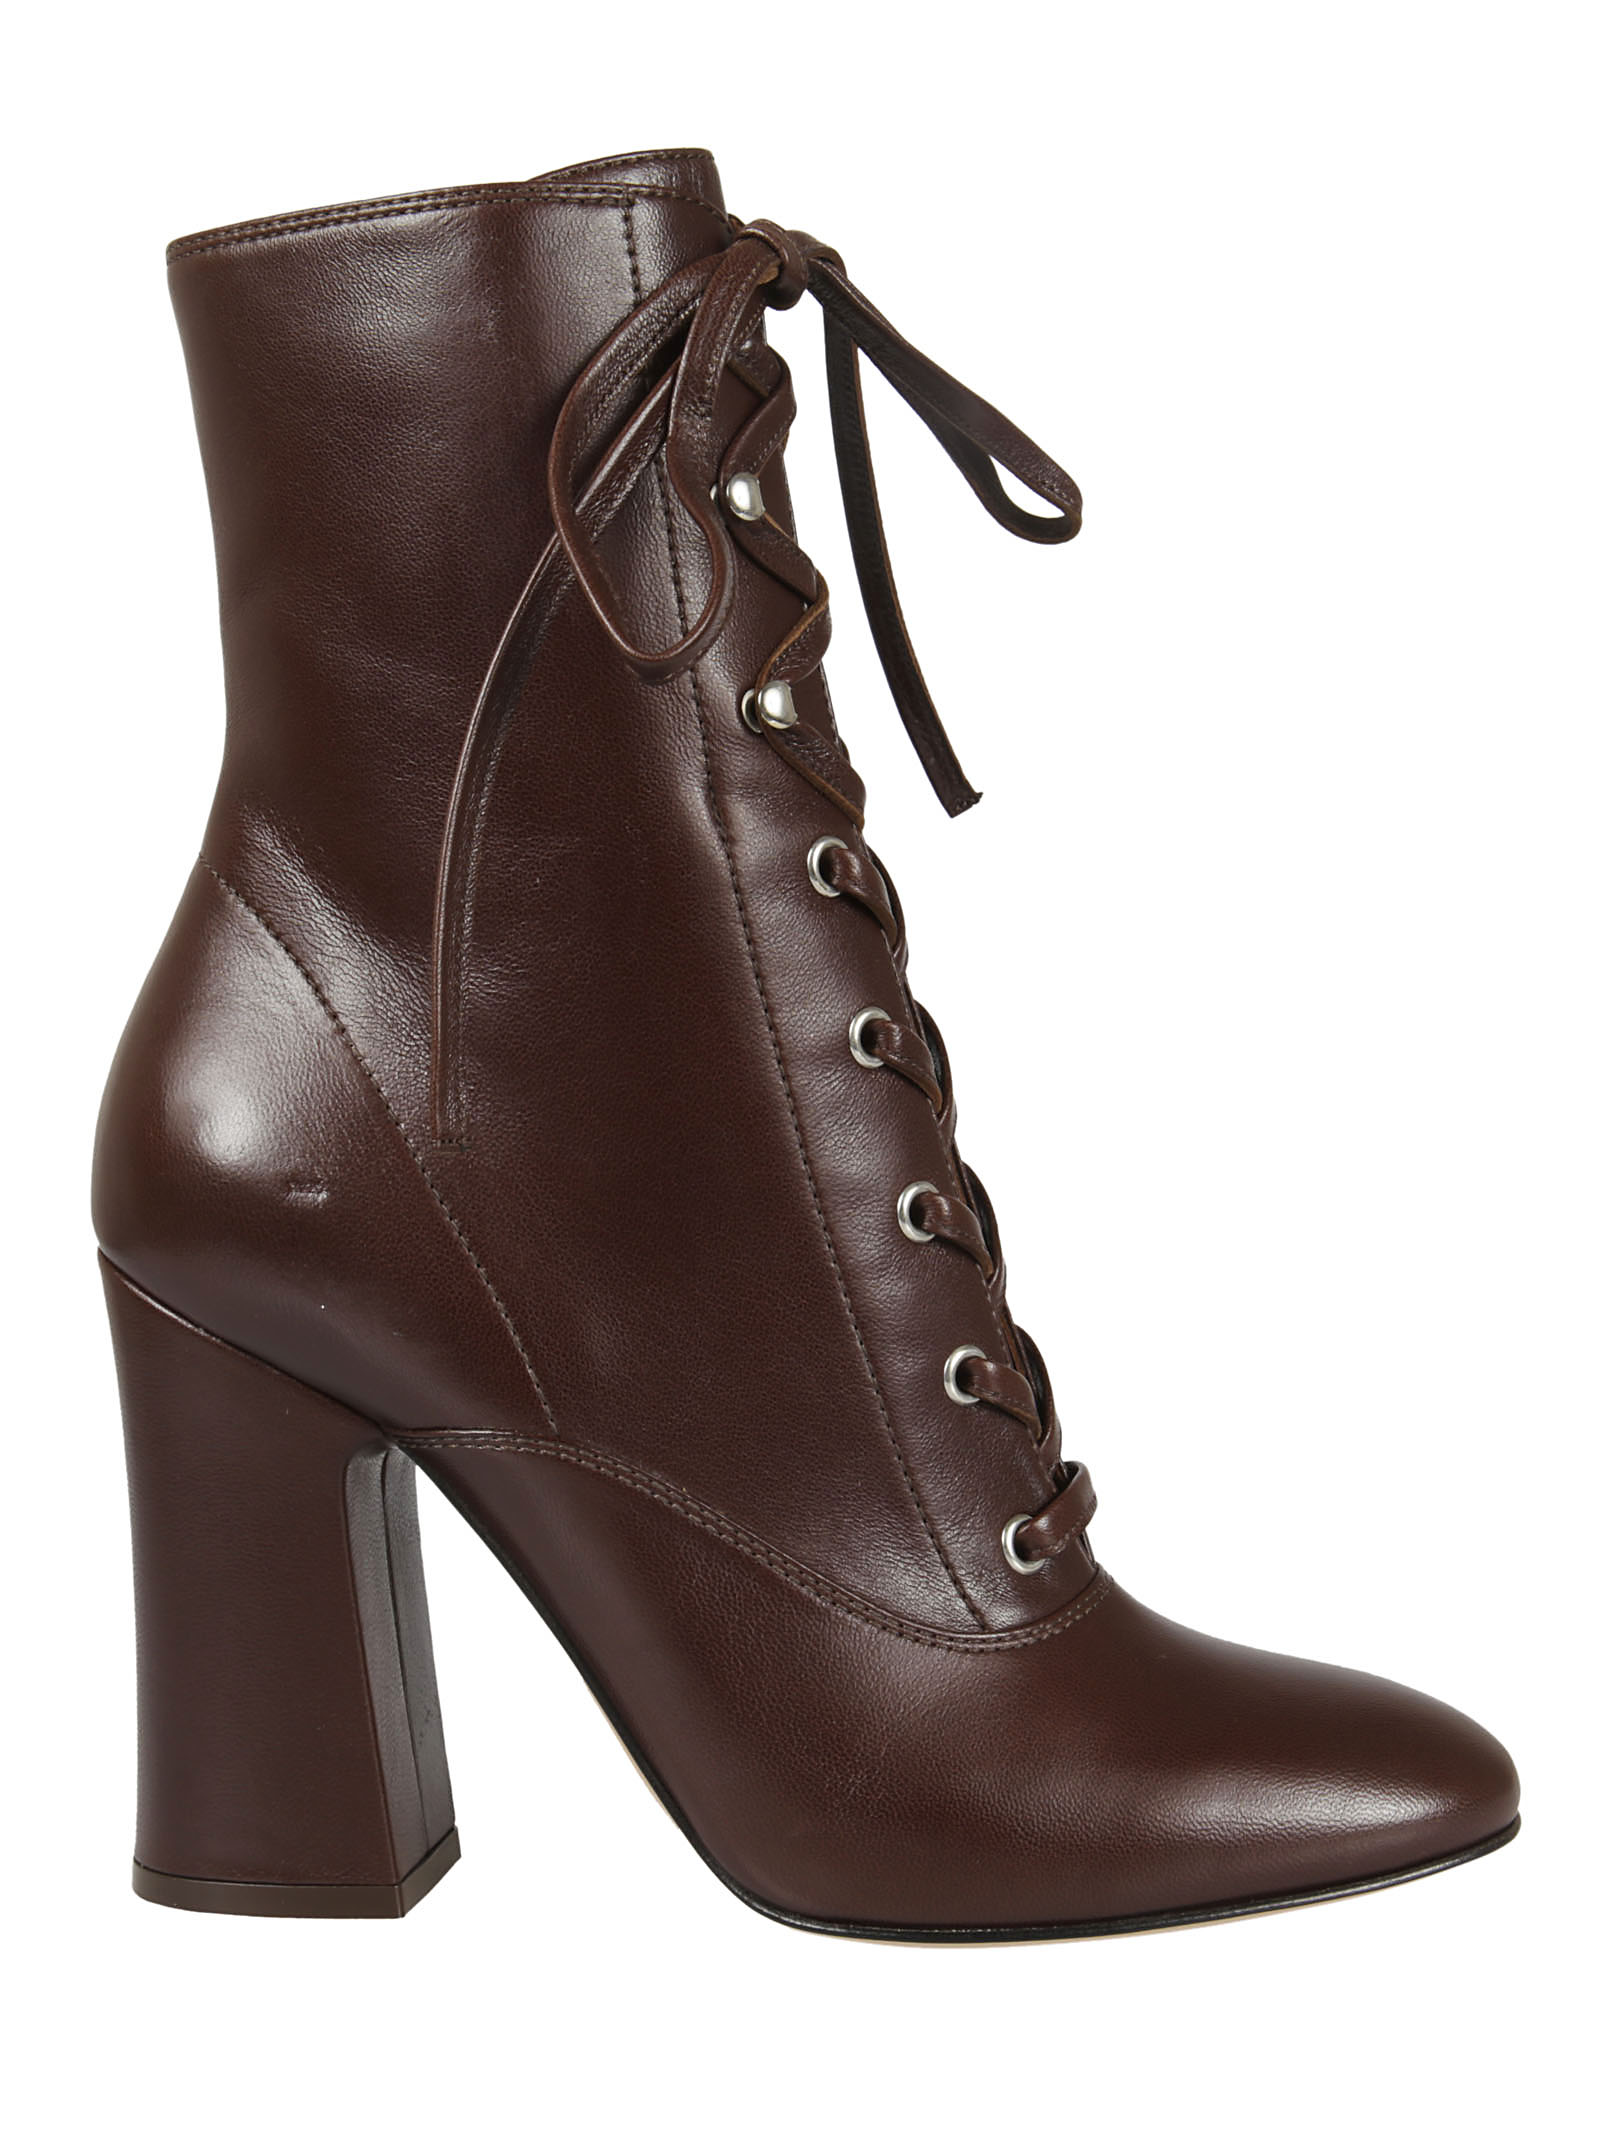 Gianvito Rossi BOOT